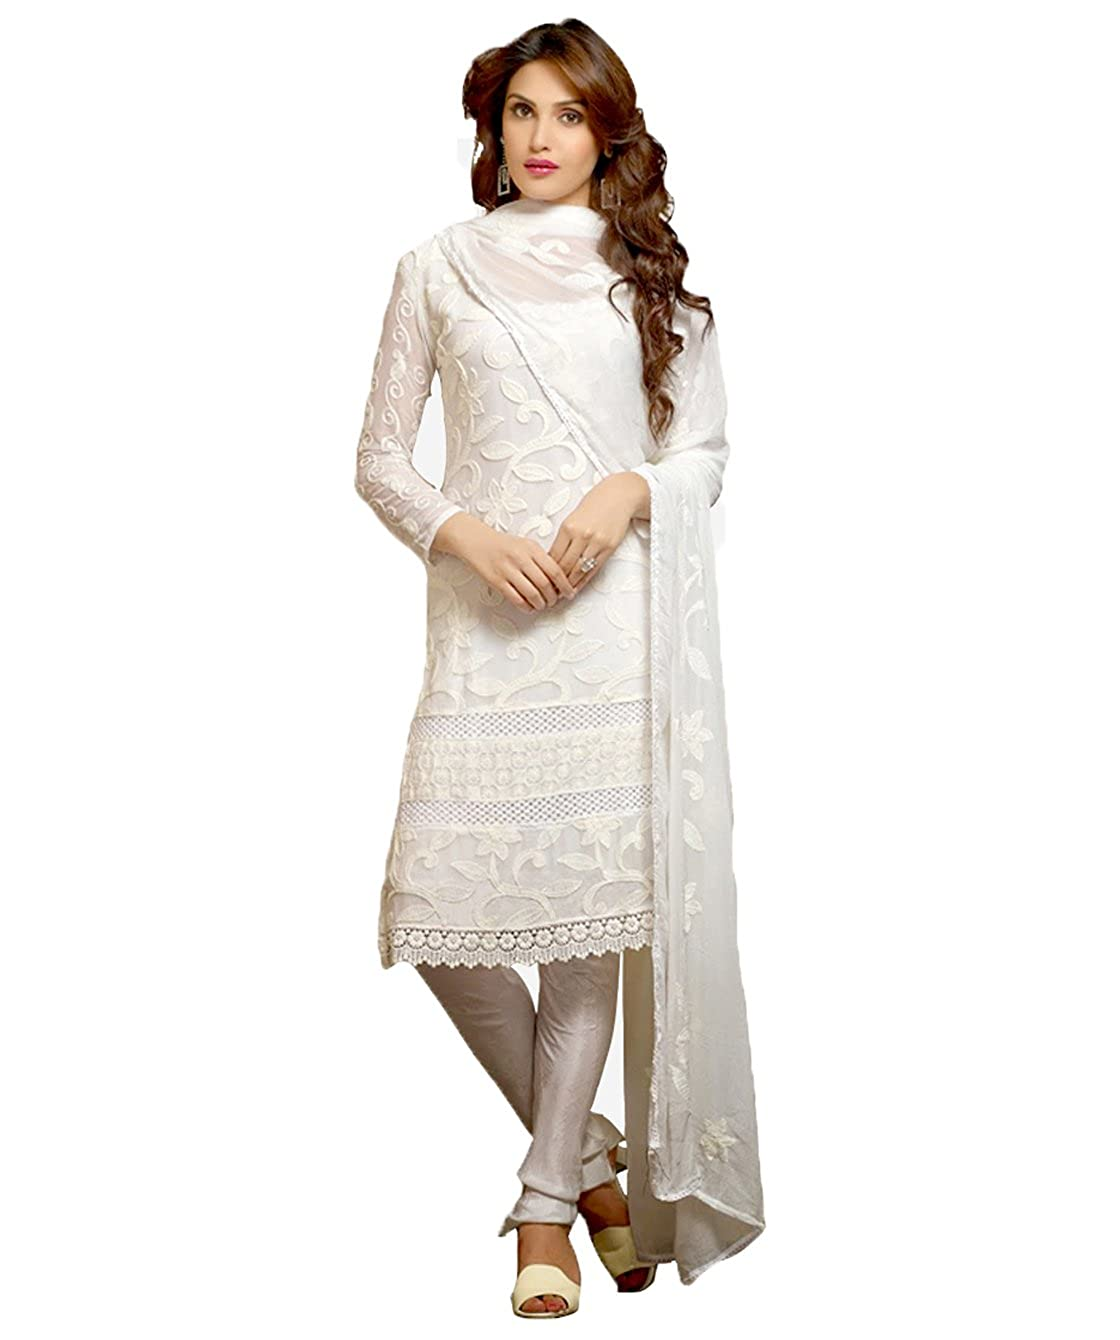 Buy Utsav Designer Women S Karachi Work Semi Stitched Salwar Suit Dress Material Dnr 1008 White At Amazon In